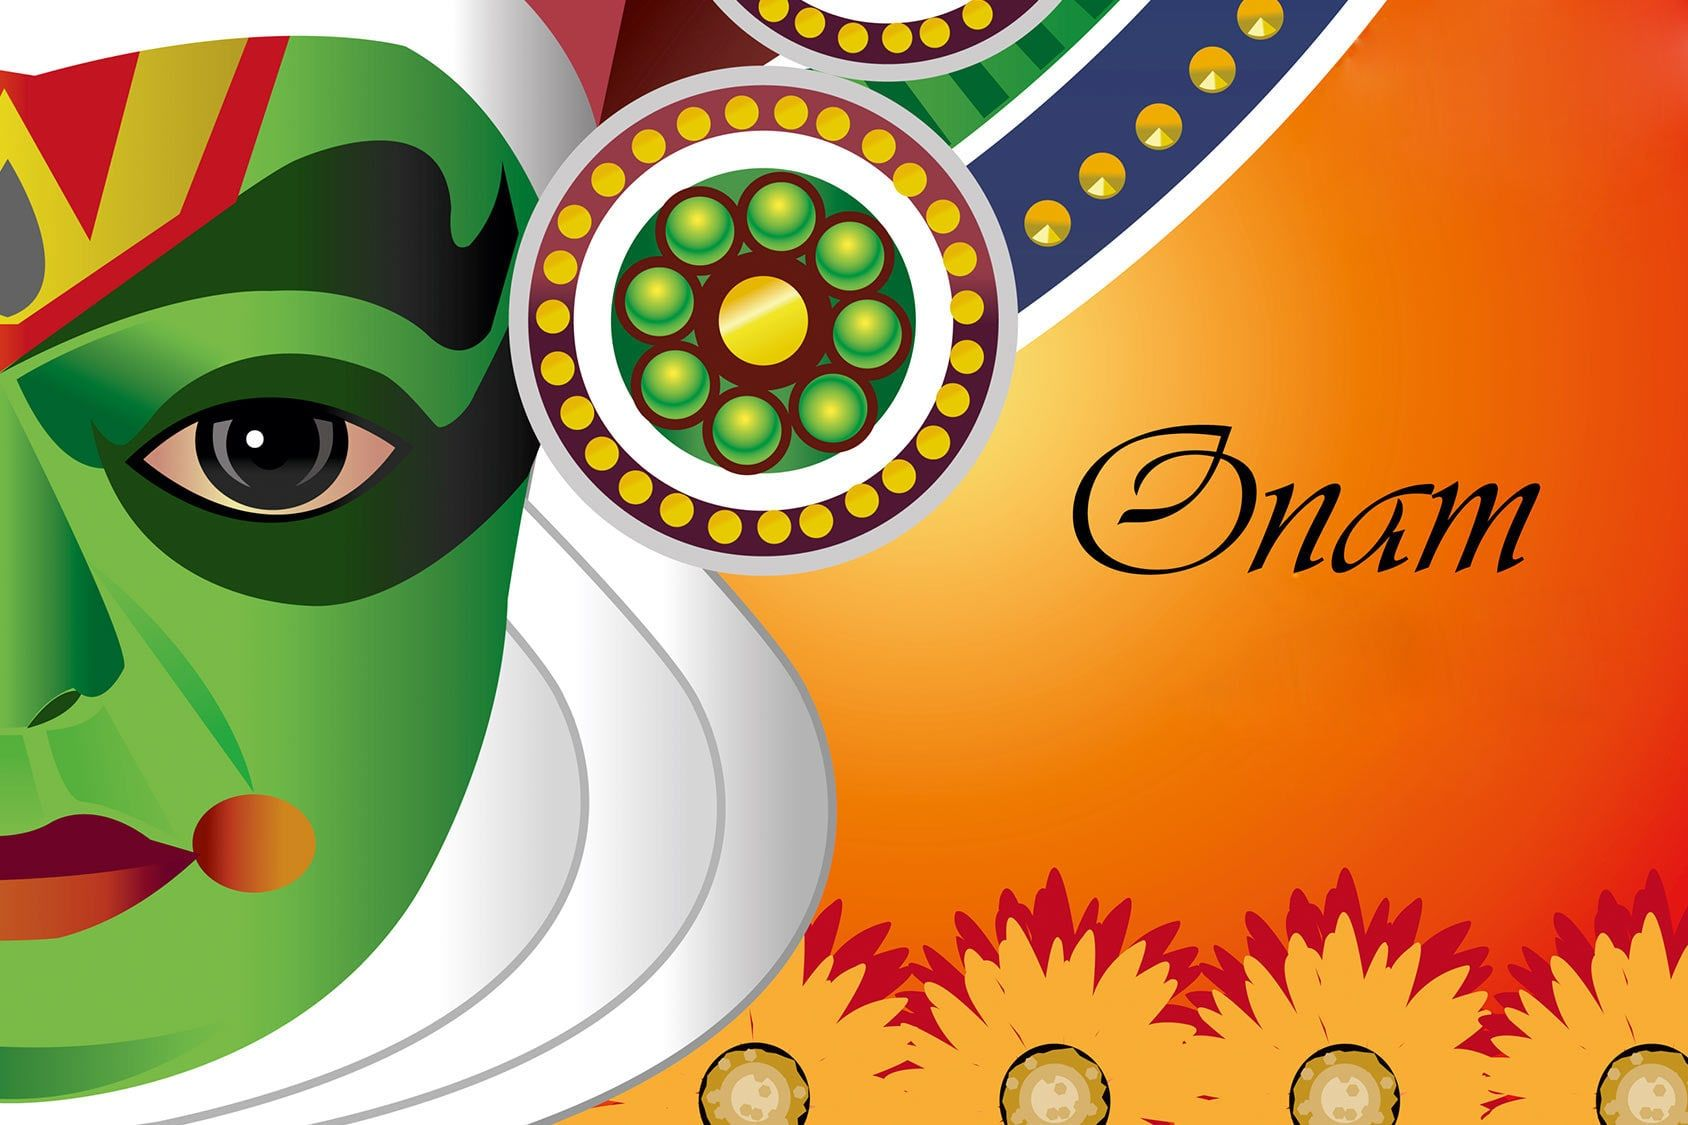 Onam Quotes For Whatsapp Onam Wishes For Whatsapp Onam Greetings